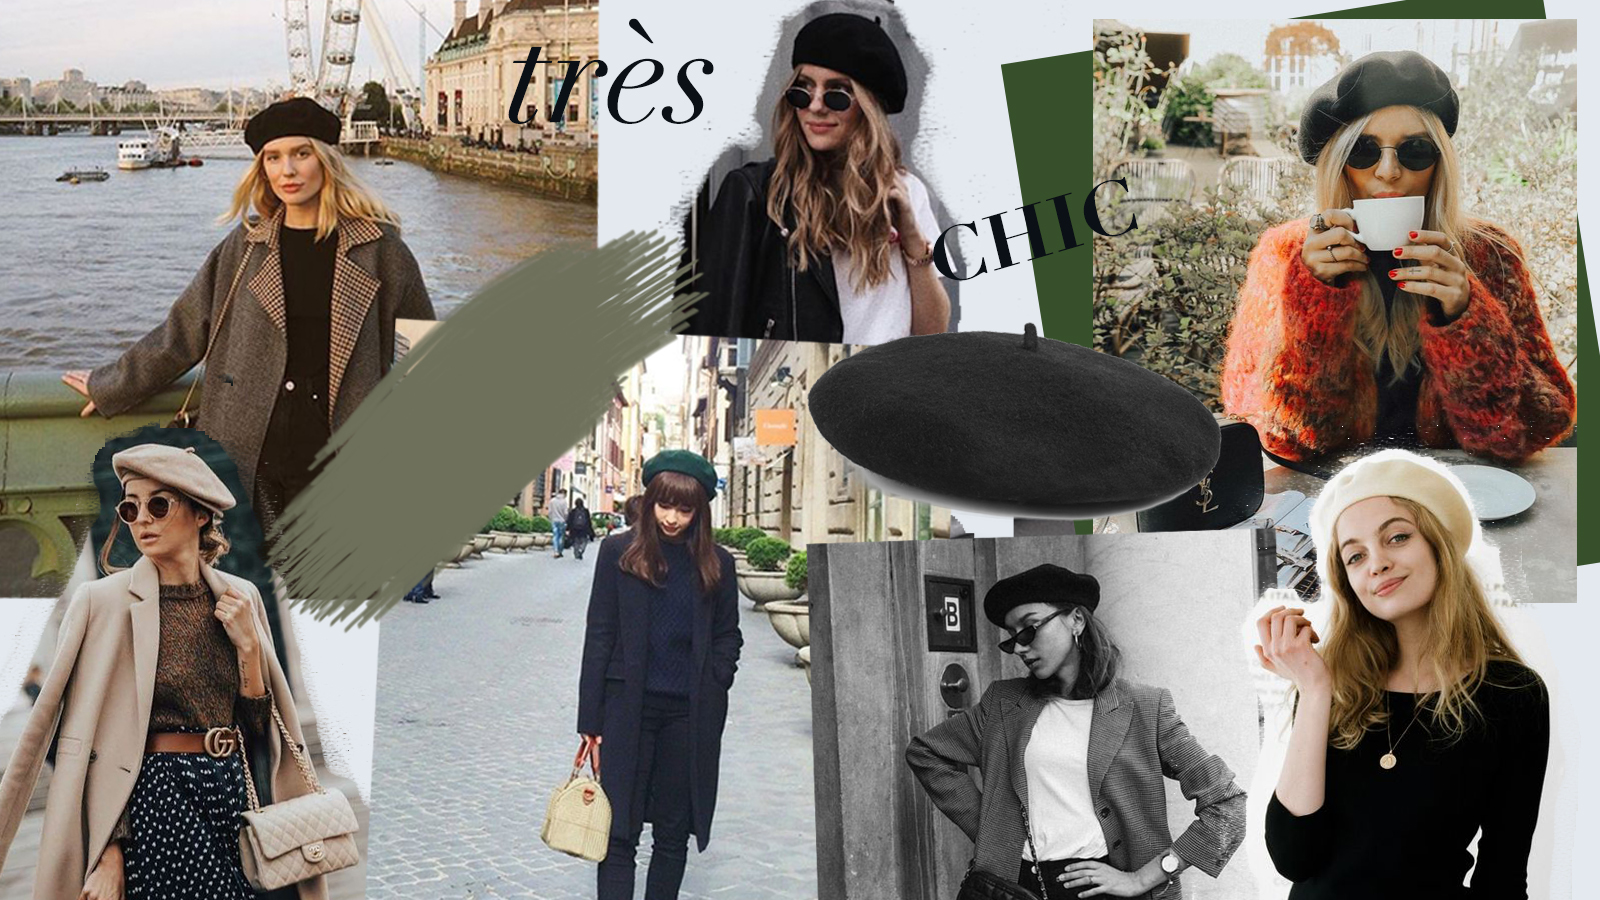 beret_outfit_how-to-wear-a-beret.jpg